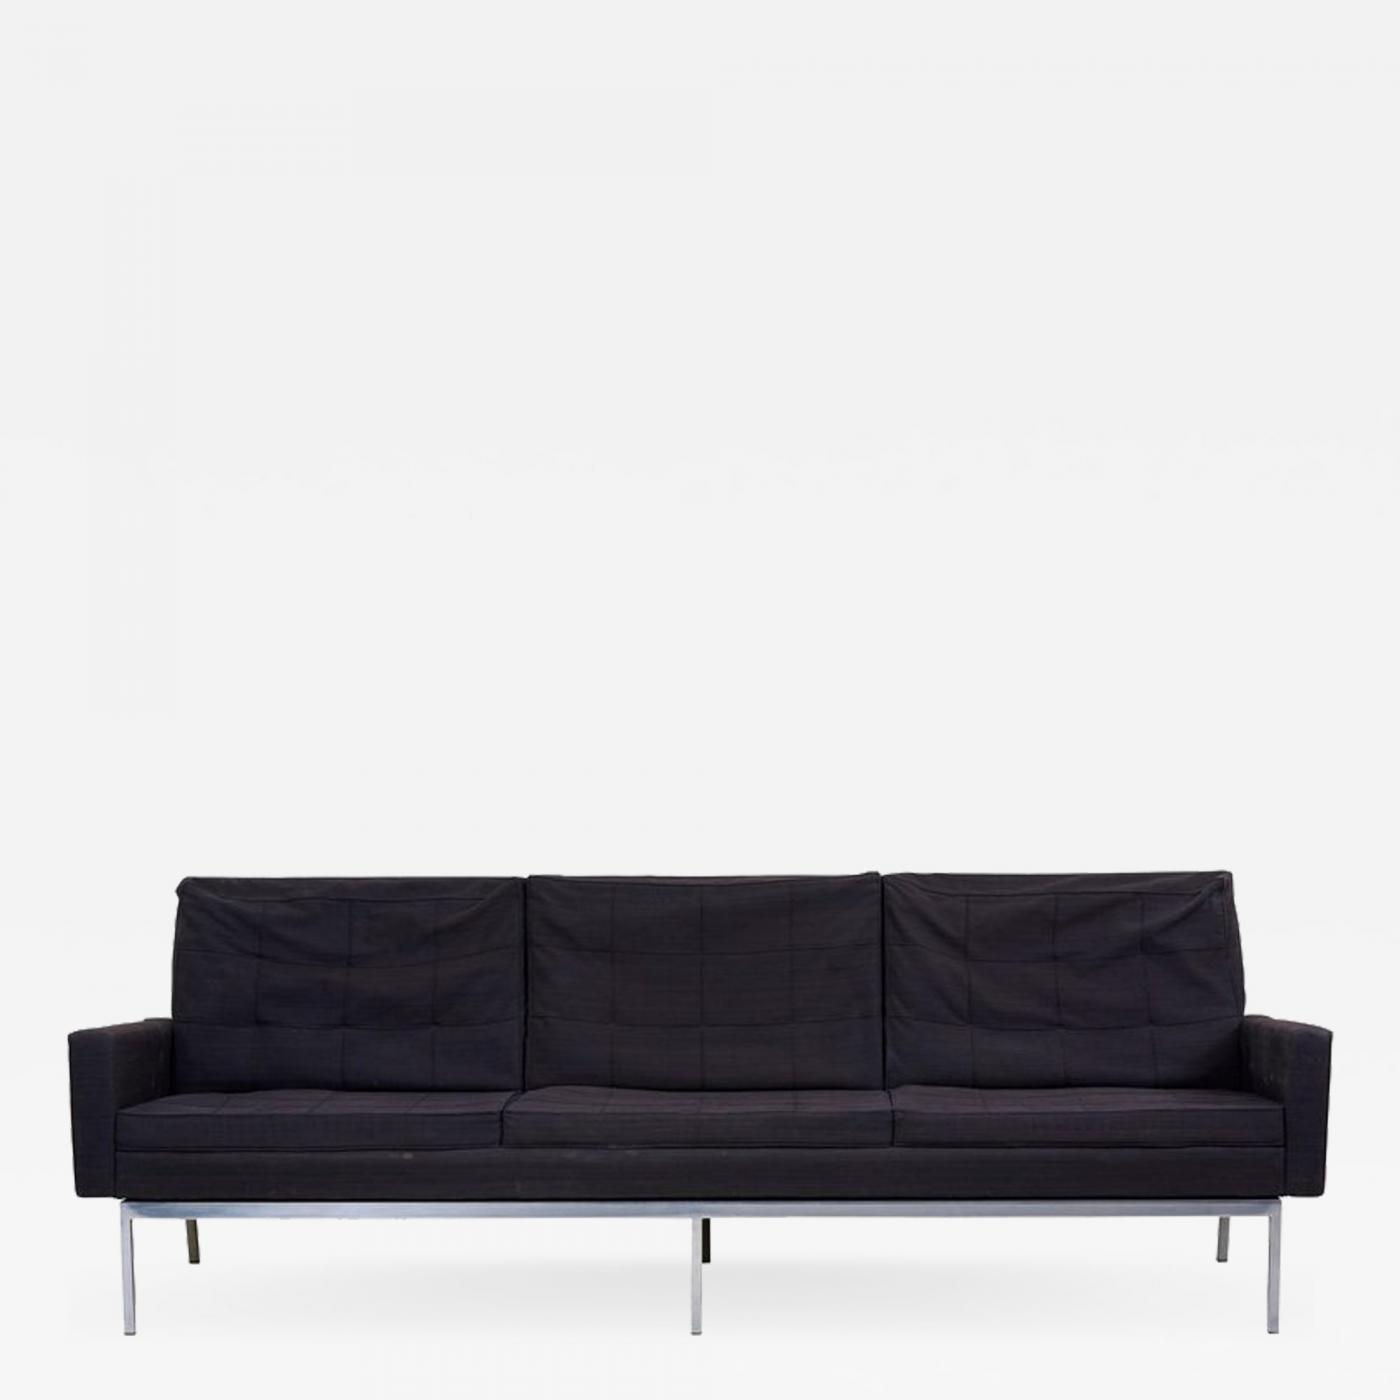 Knoll International Florence Knoll Sofa Model 67a By Florence Knoll For Knoll International In Original Condition